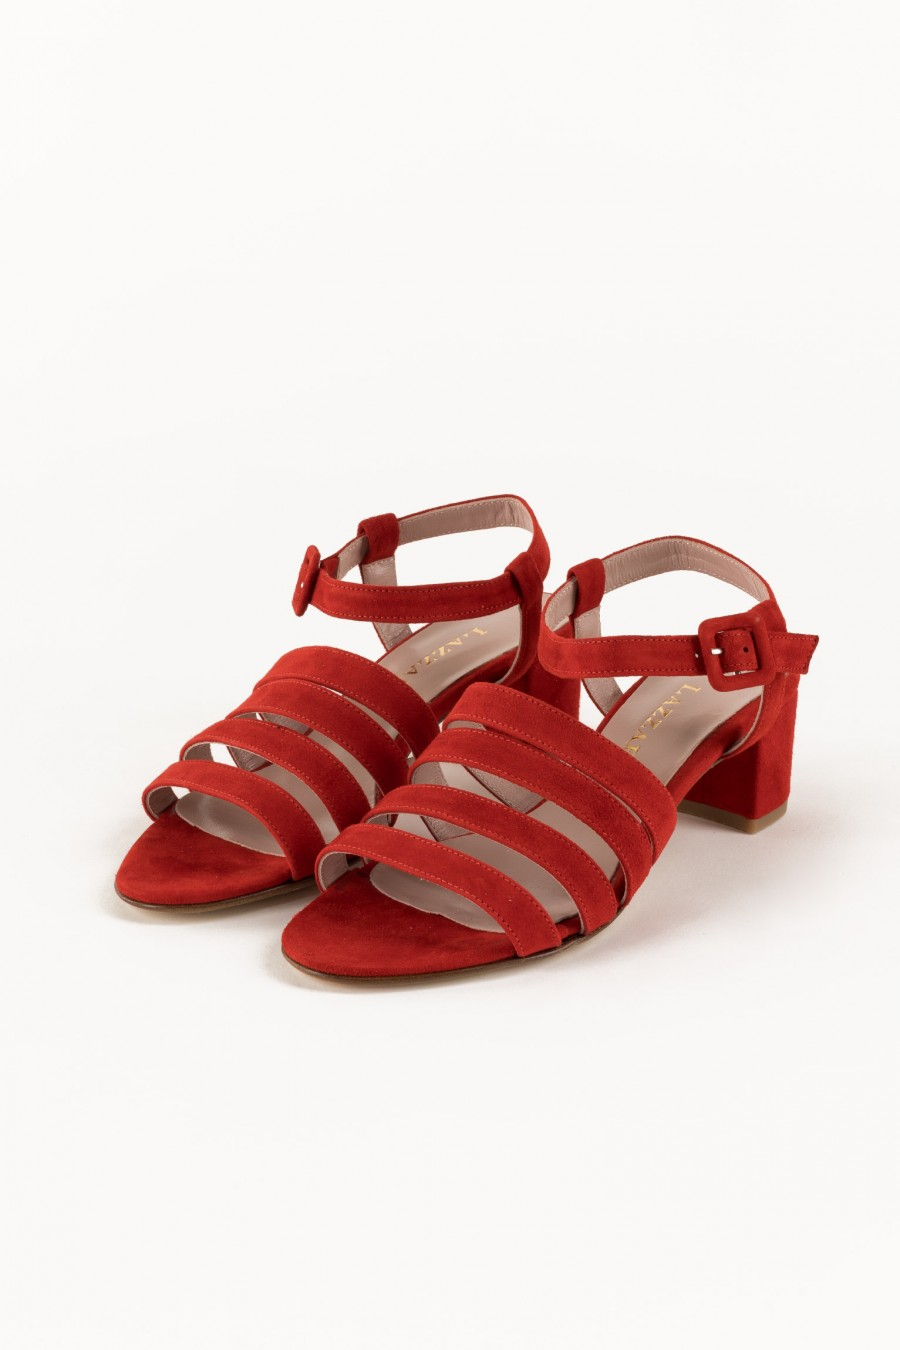 Red sandals with lists